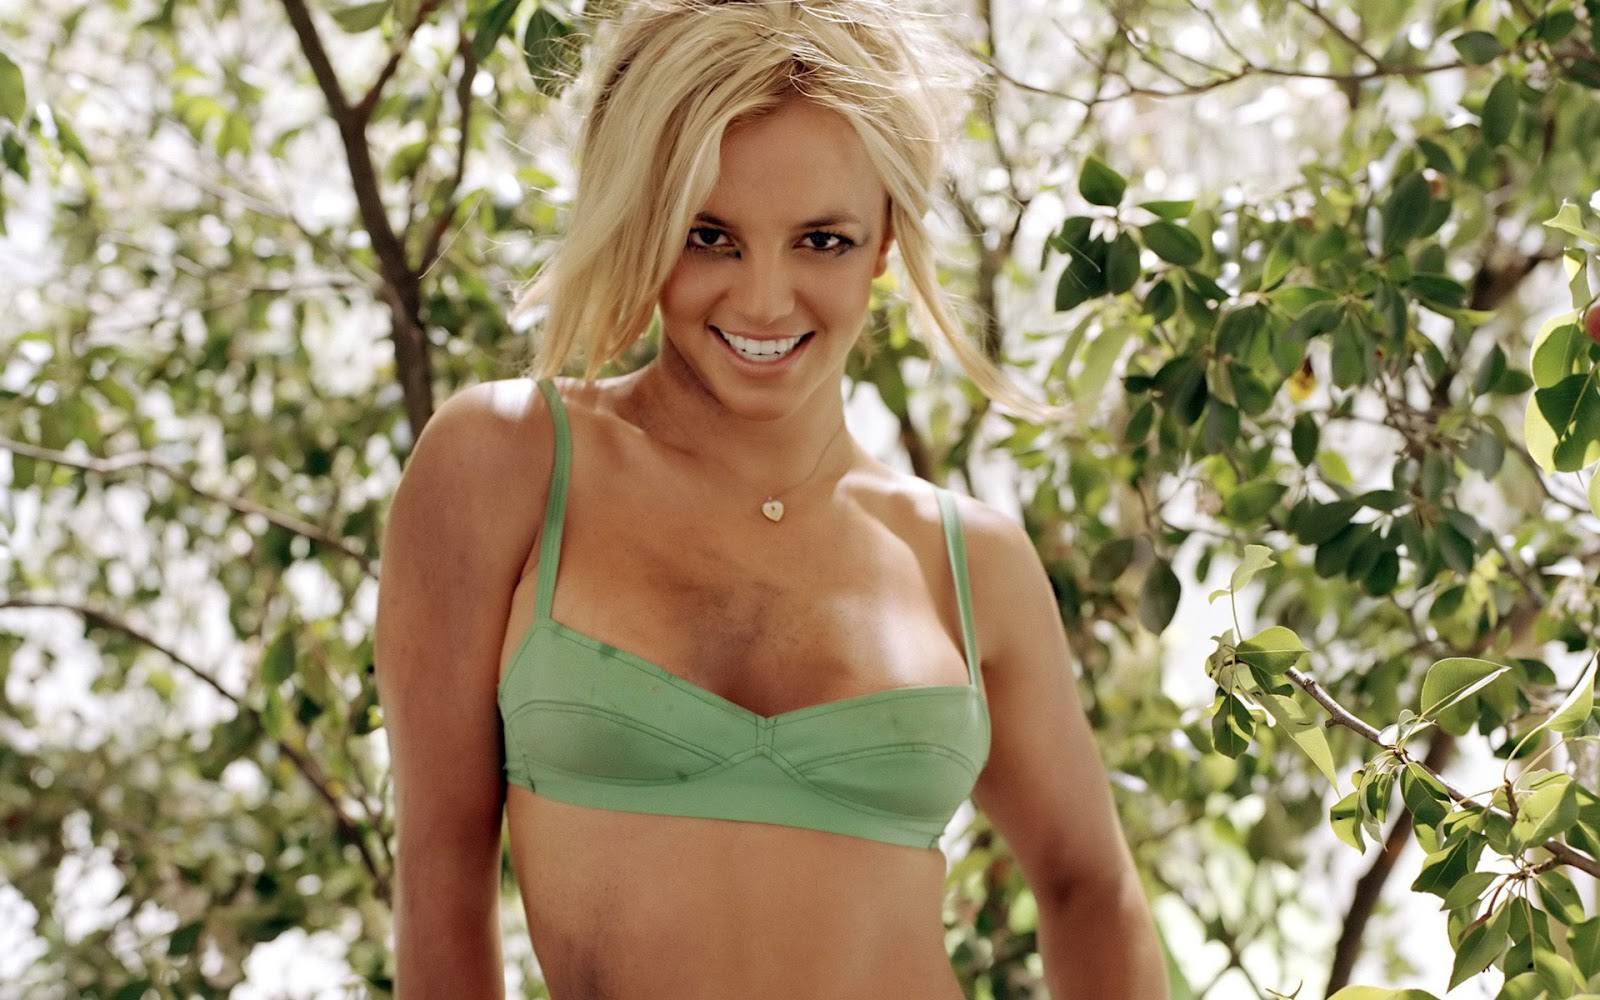 Watch Britney spears sexy 2 hot photos video